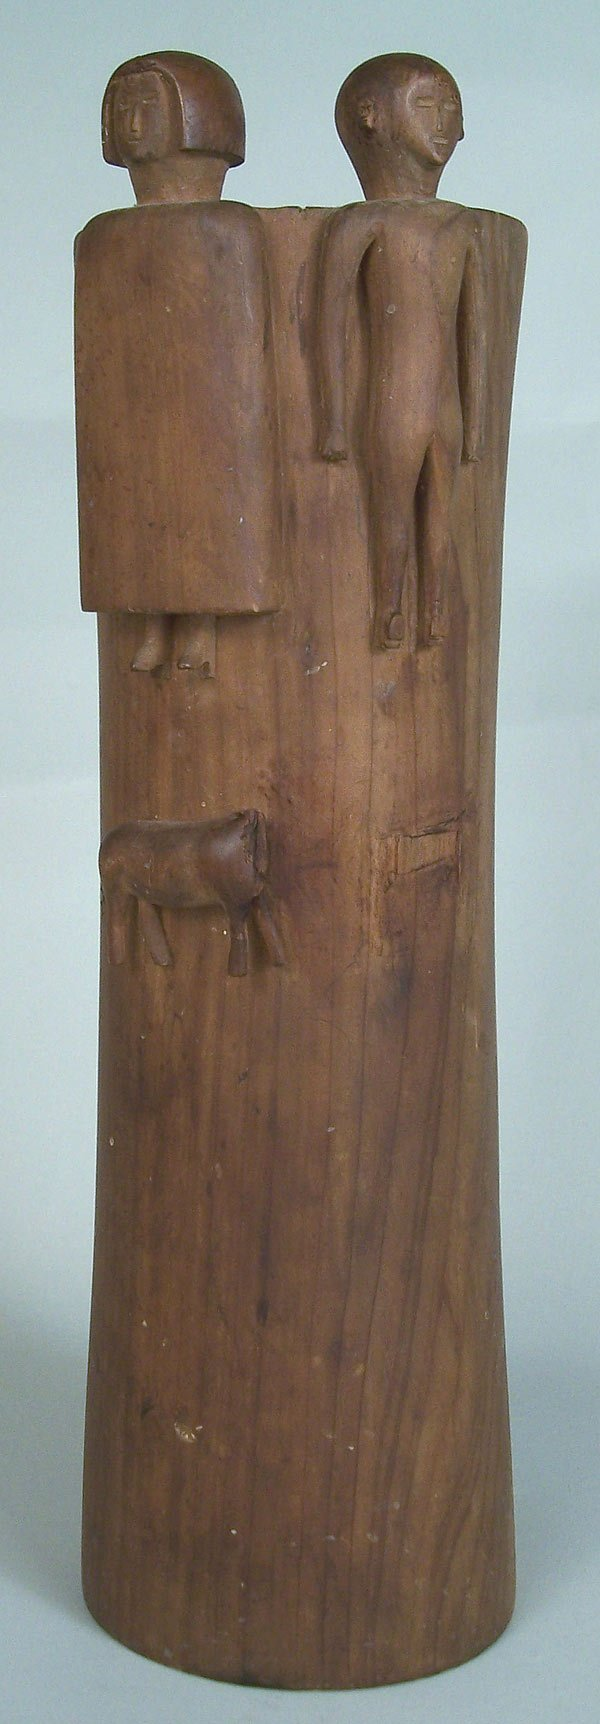 14: Middle Tennessee folk art carving of man and woman